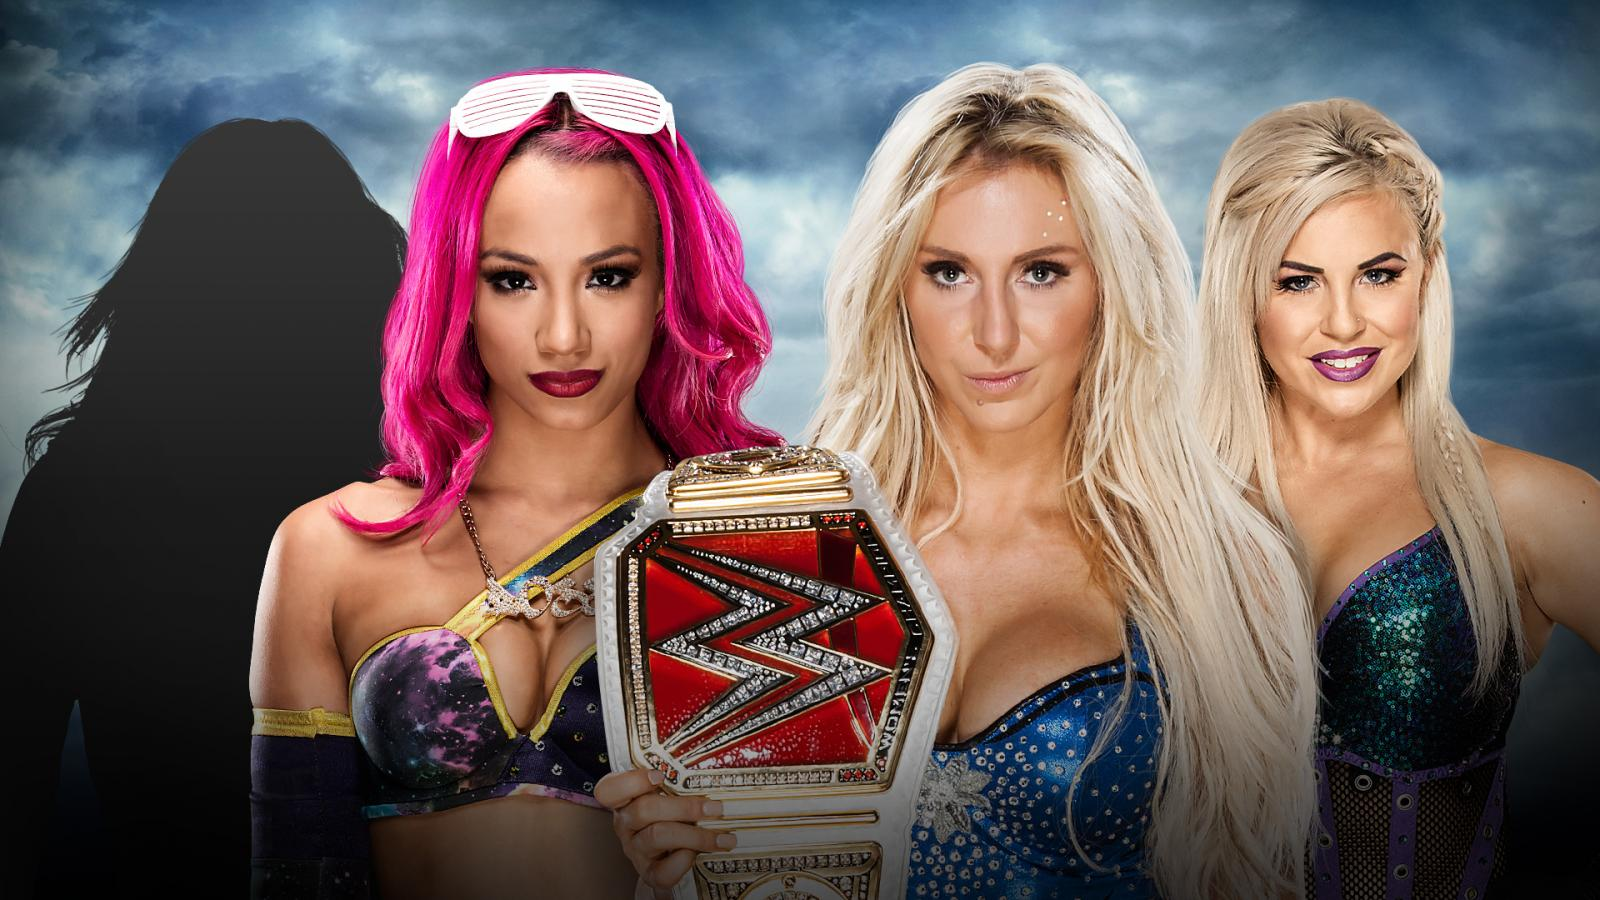 Battleground - ??? & Sasha Banks Vs. Charlotte & Dana Brooke